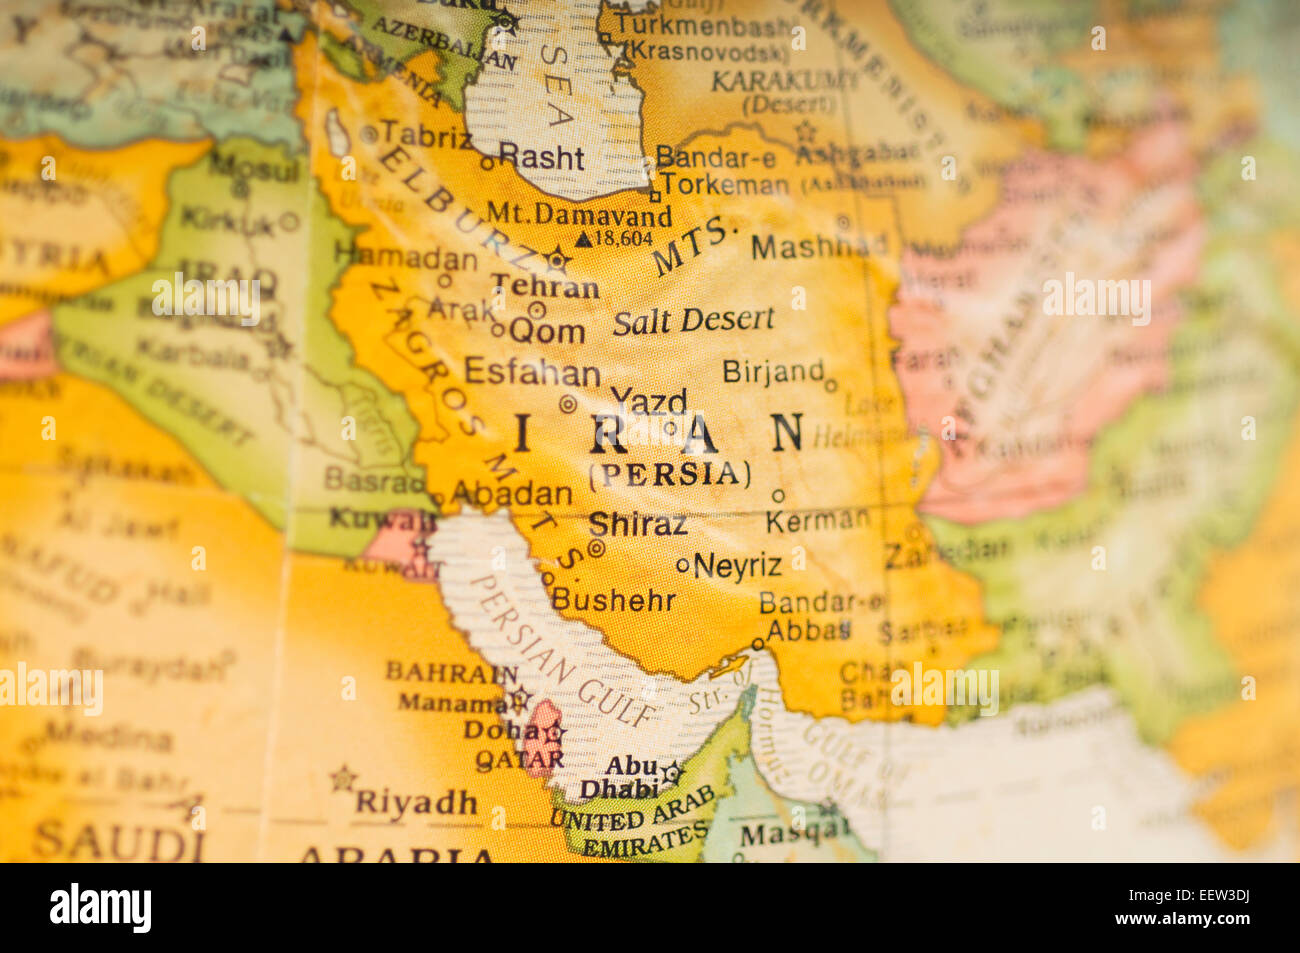 Map of Iran and the Middle East Stock Photo Royalty Free Image